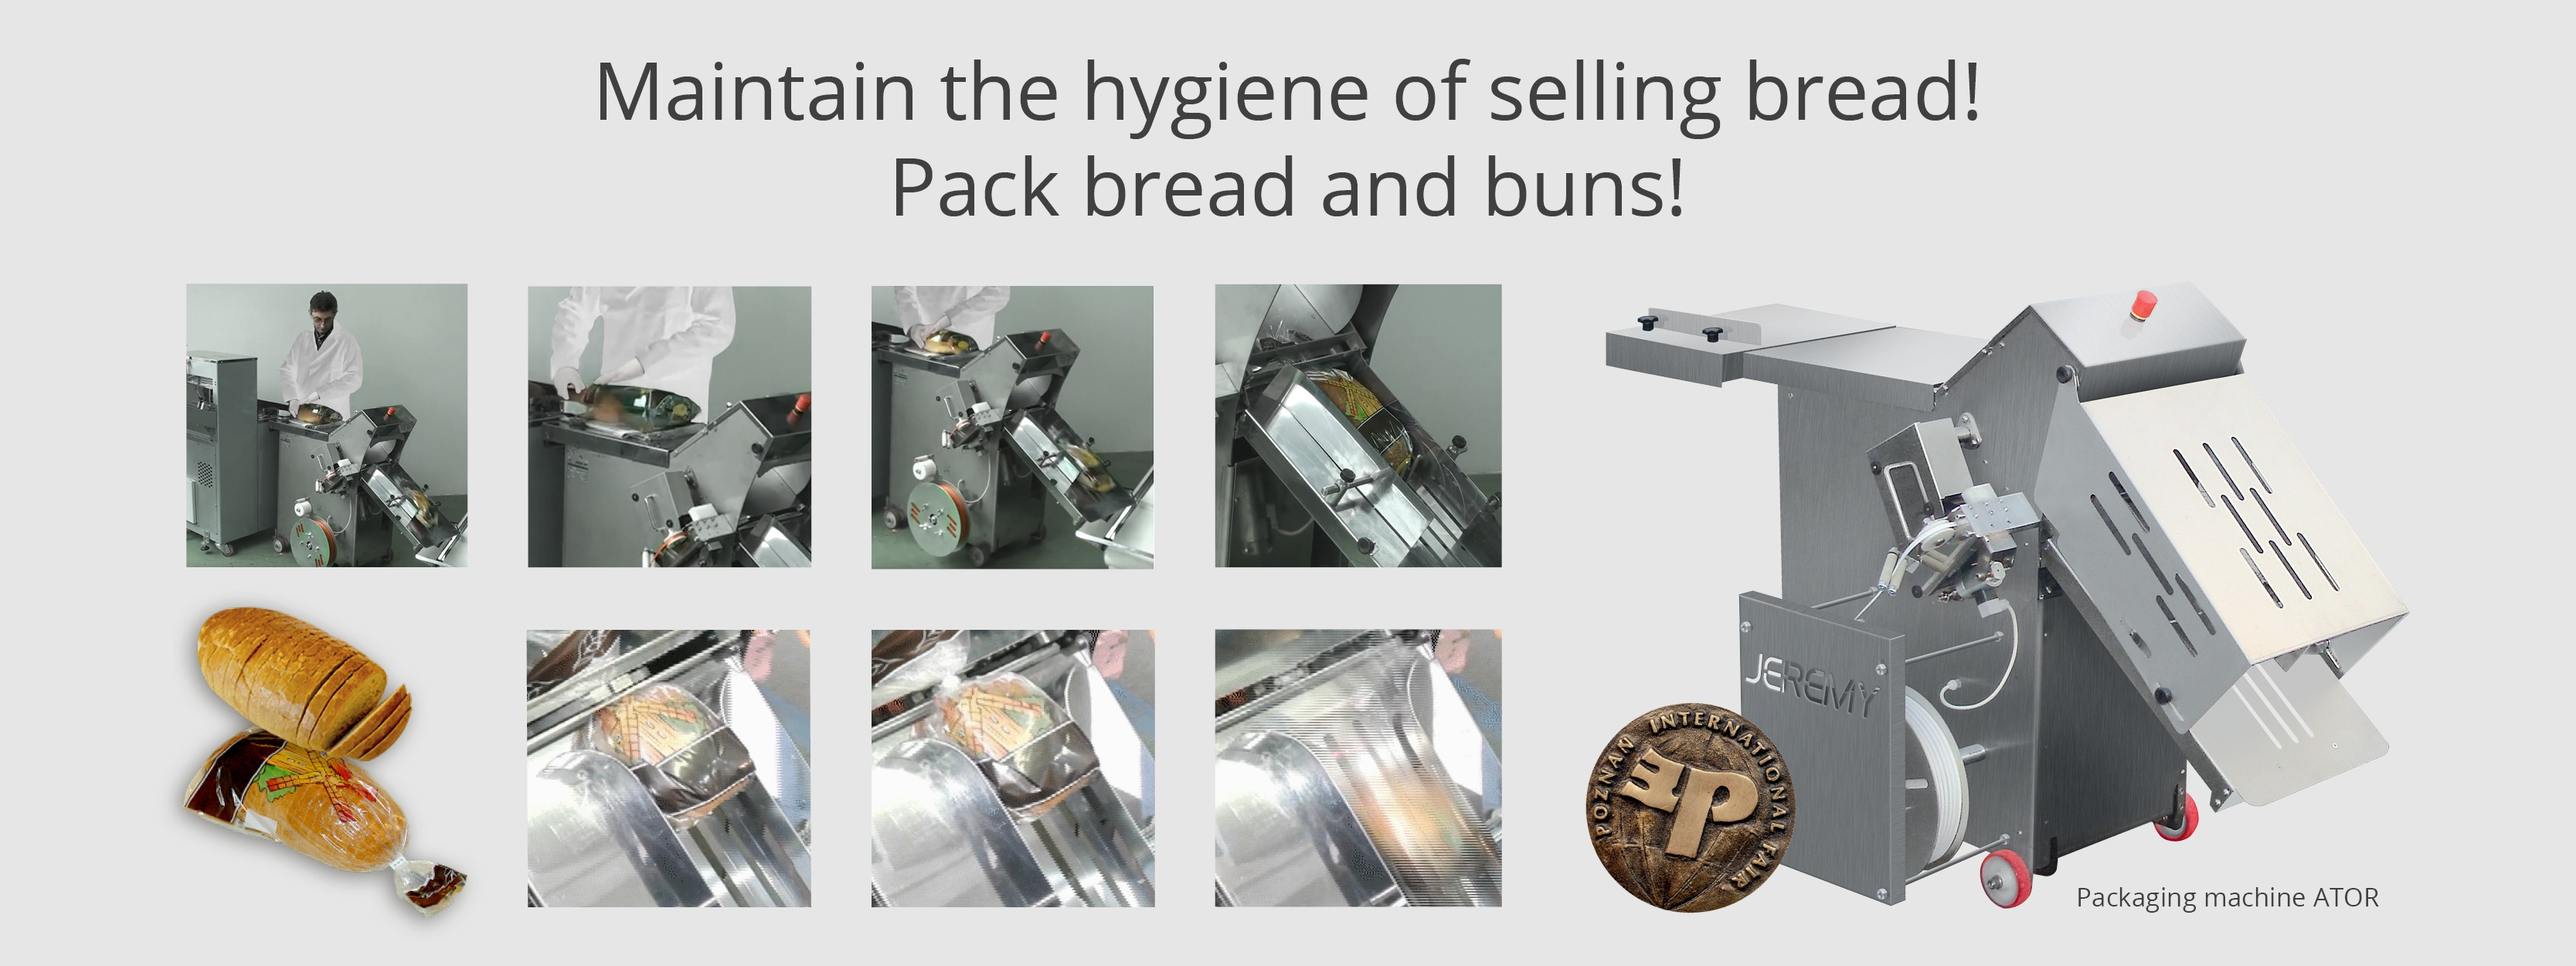 Maintain the hygiene of selling bread!